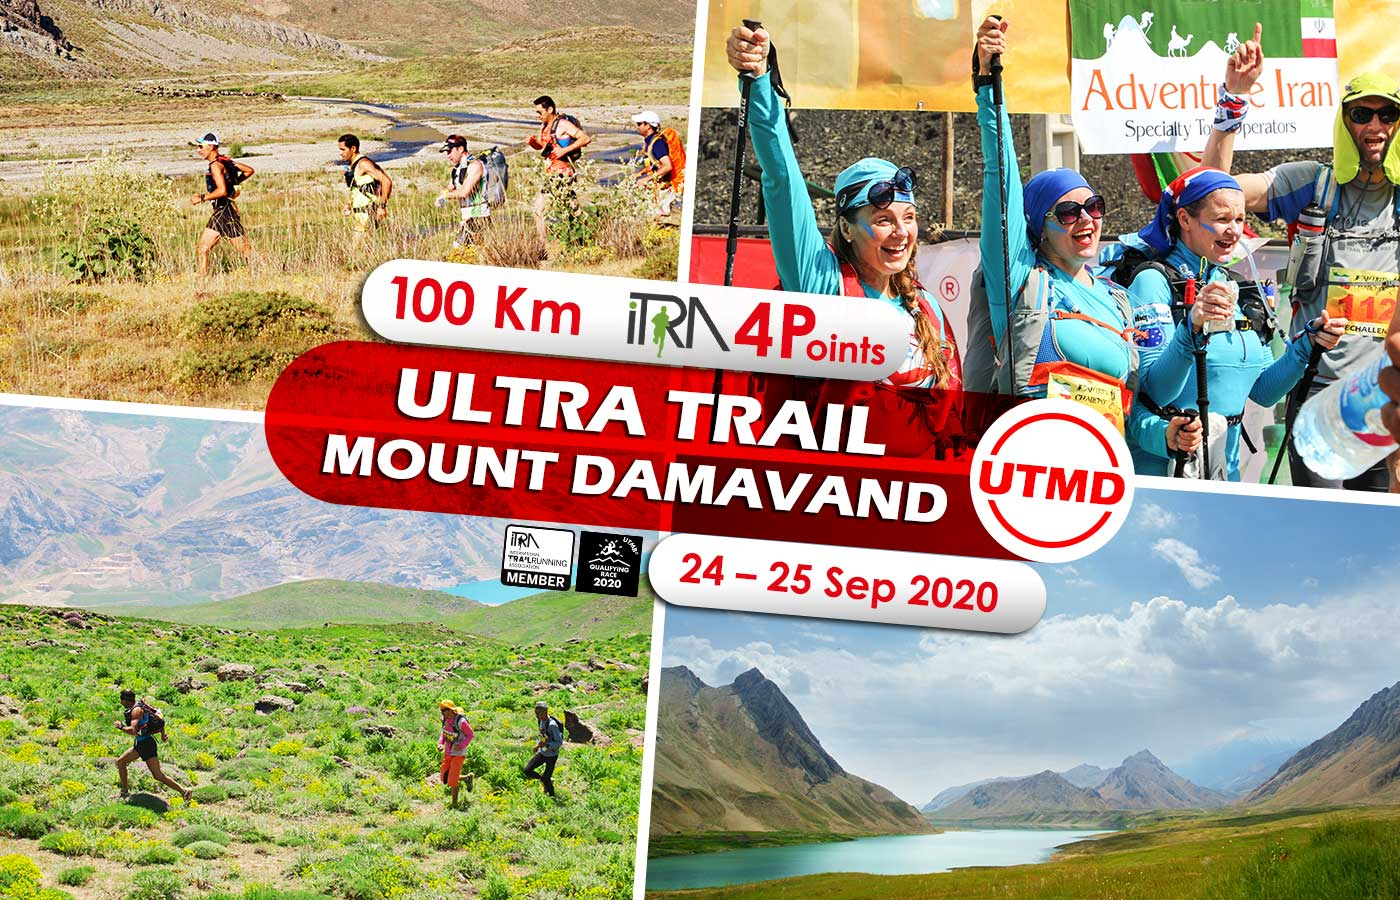 Ultra Trail Mount Damavand